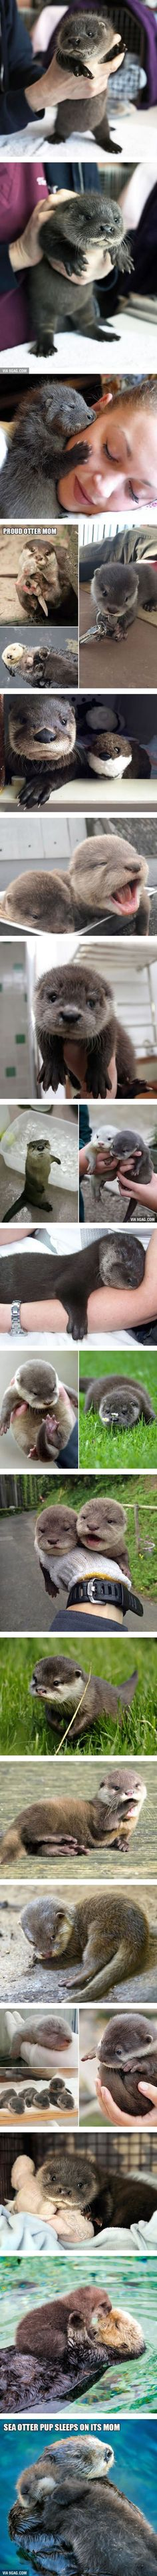 Baby Otters too otterable ! Baby Otters too otterable ! Baby Otters too otterable ! Cute Little Animals, Cute Funny Animals, Baby Otters, Baby Sloth, Tier Fotos, Cute Animal Pictures, Adorable Pictures, Baby Pictures, Most Beautiful Pictures